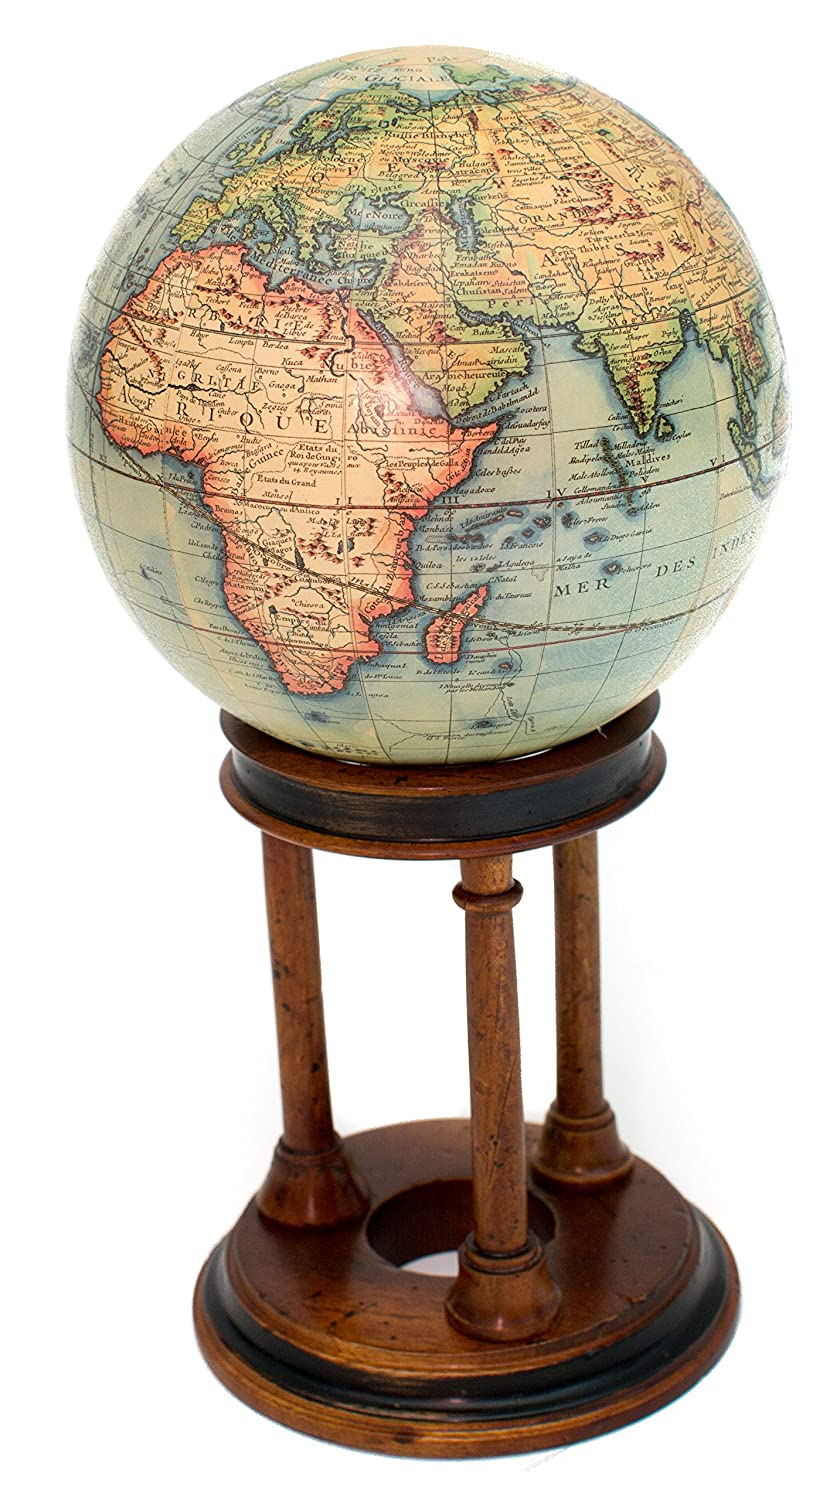 French Desk Top Authentic Globe of the World up to 1745 Bello Games New York Inc.